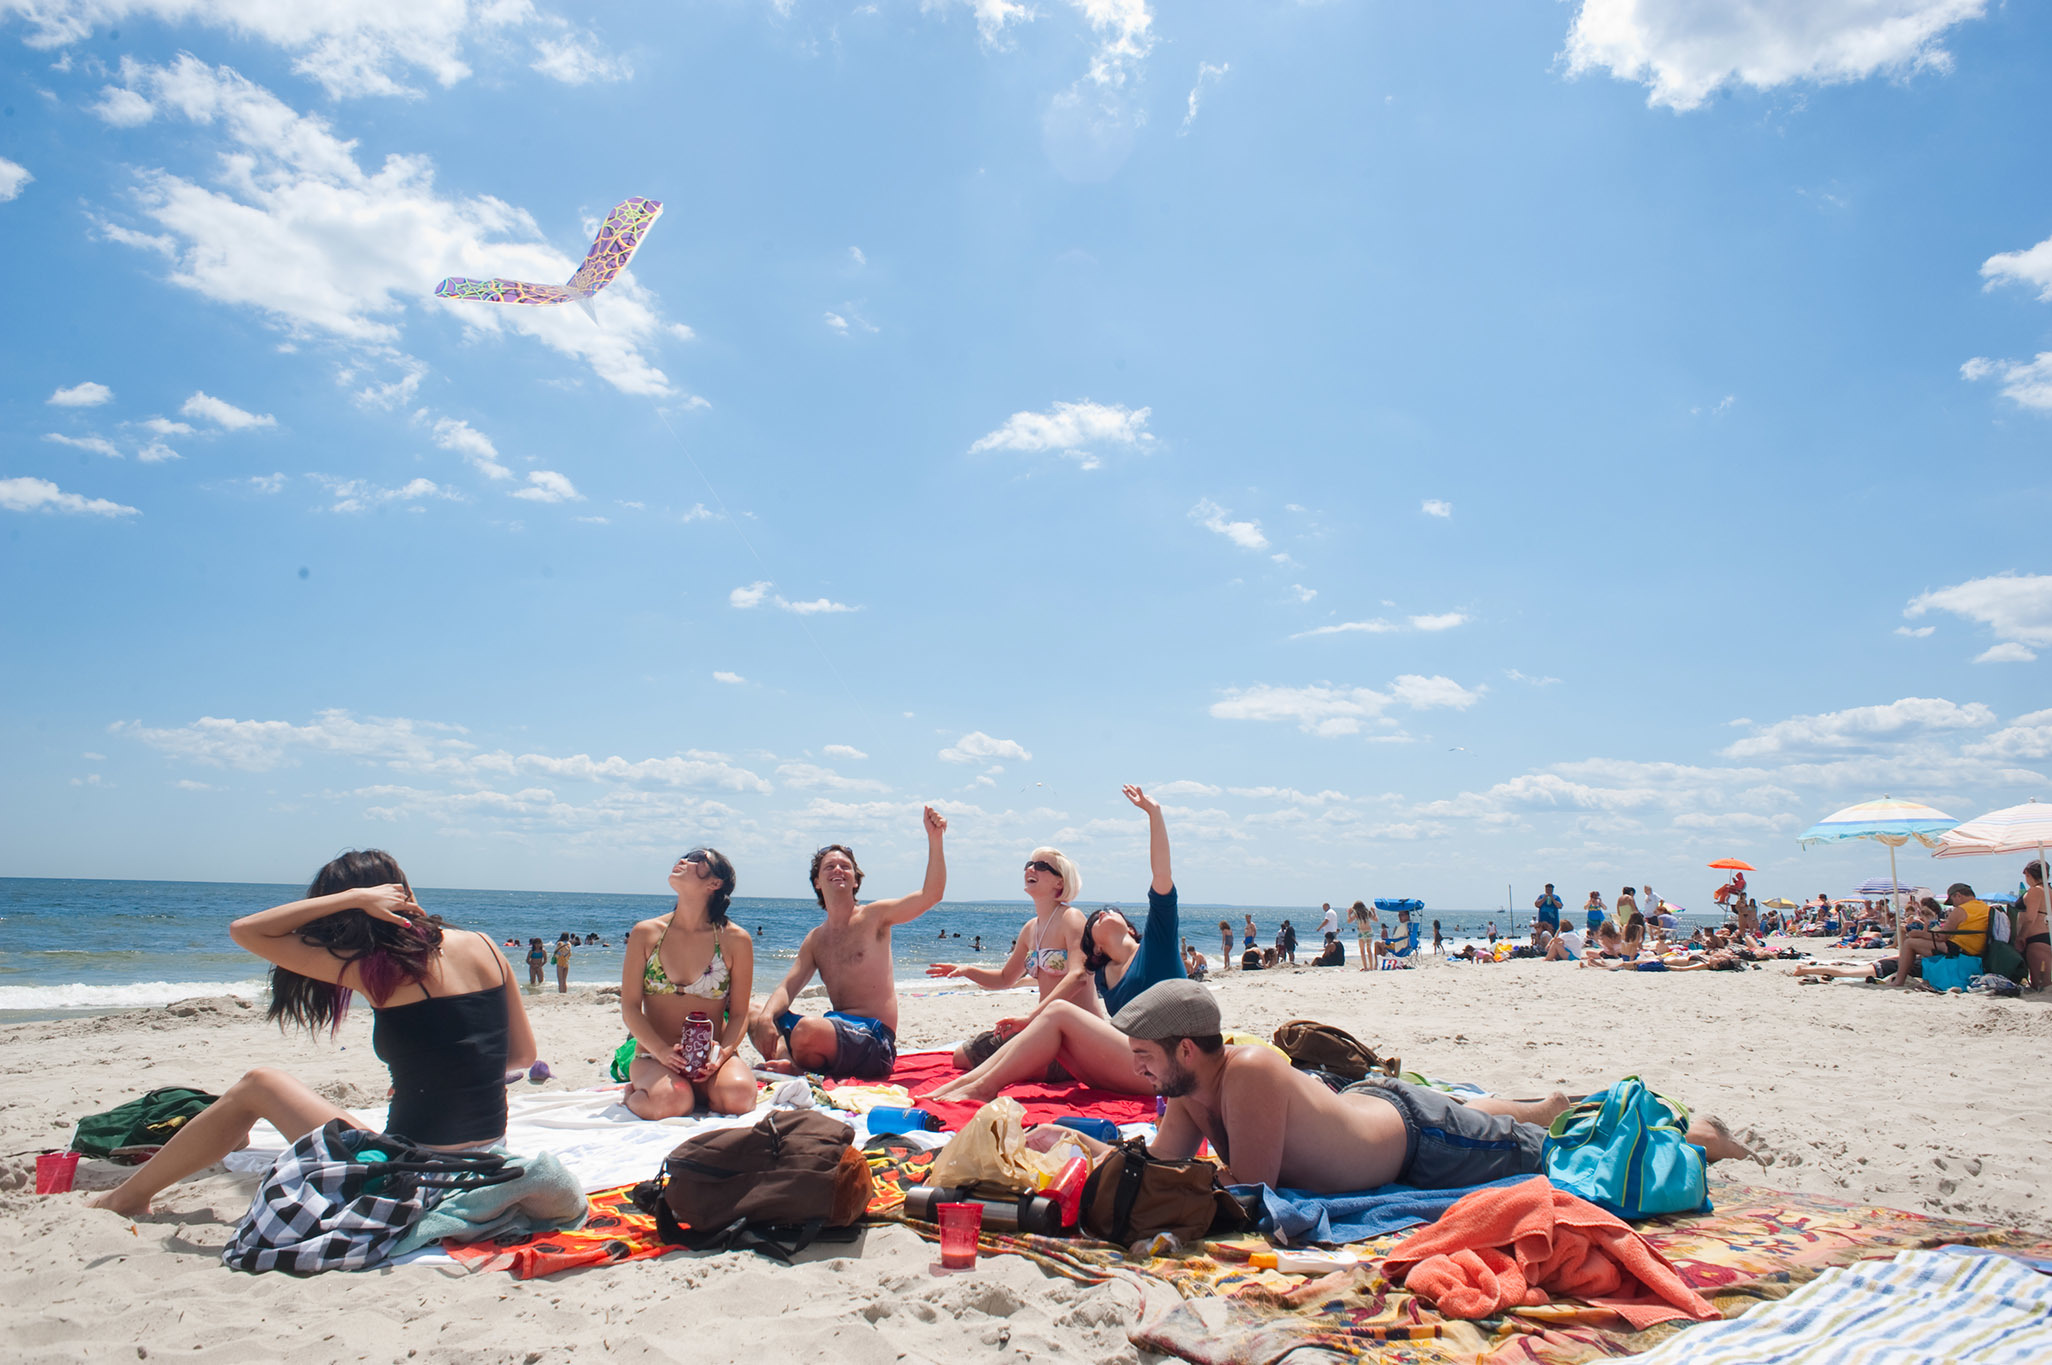 The best beaches near NYC